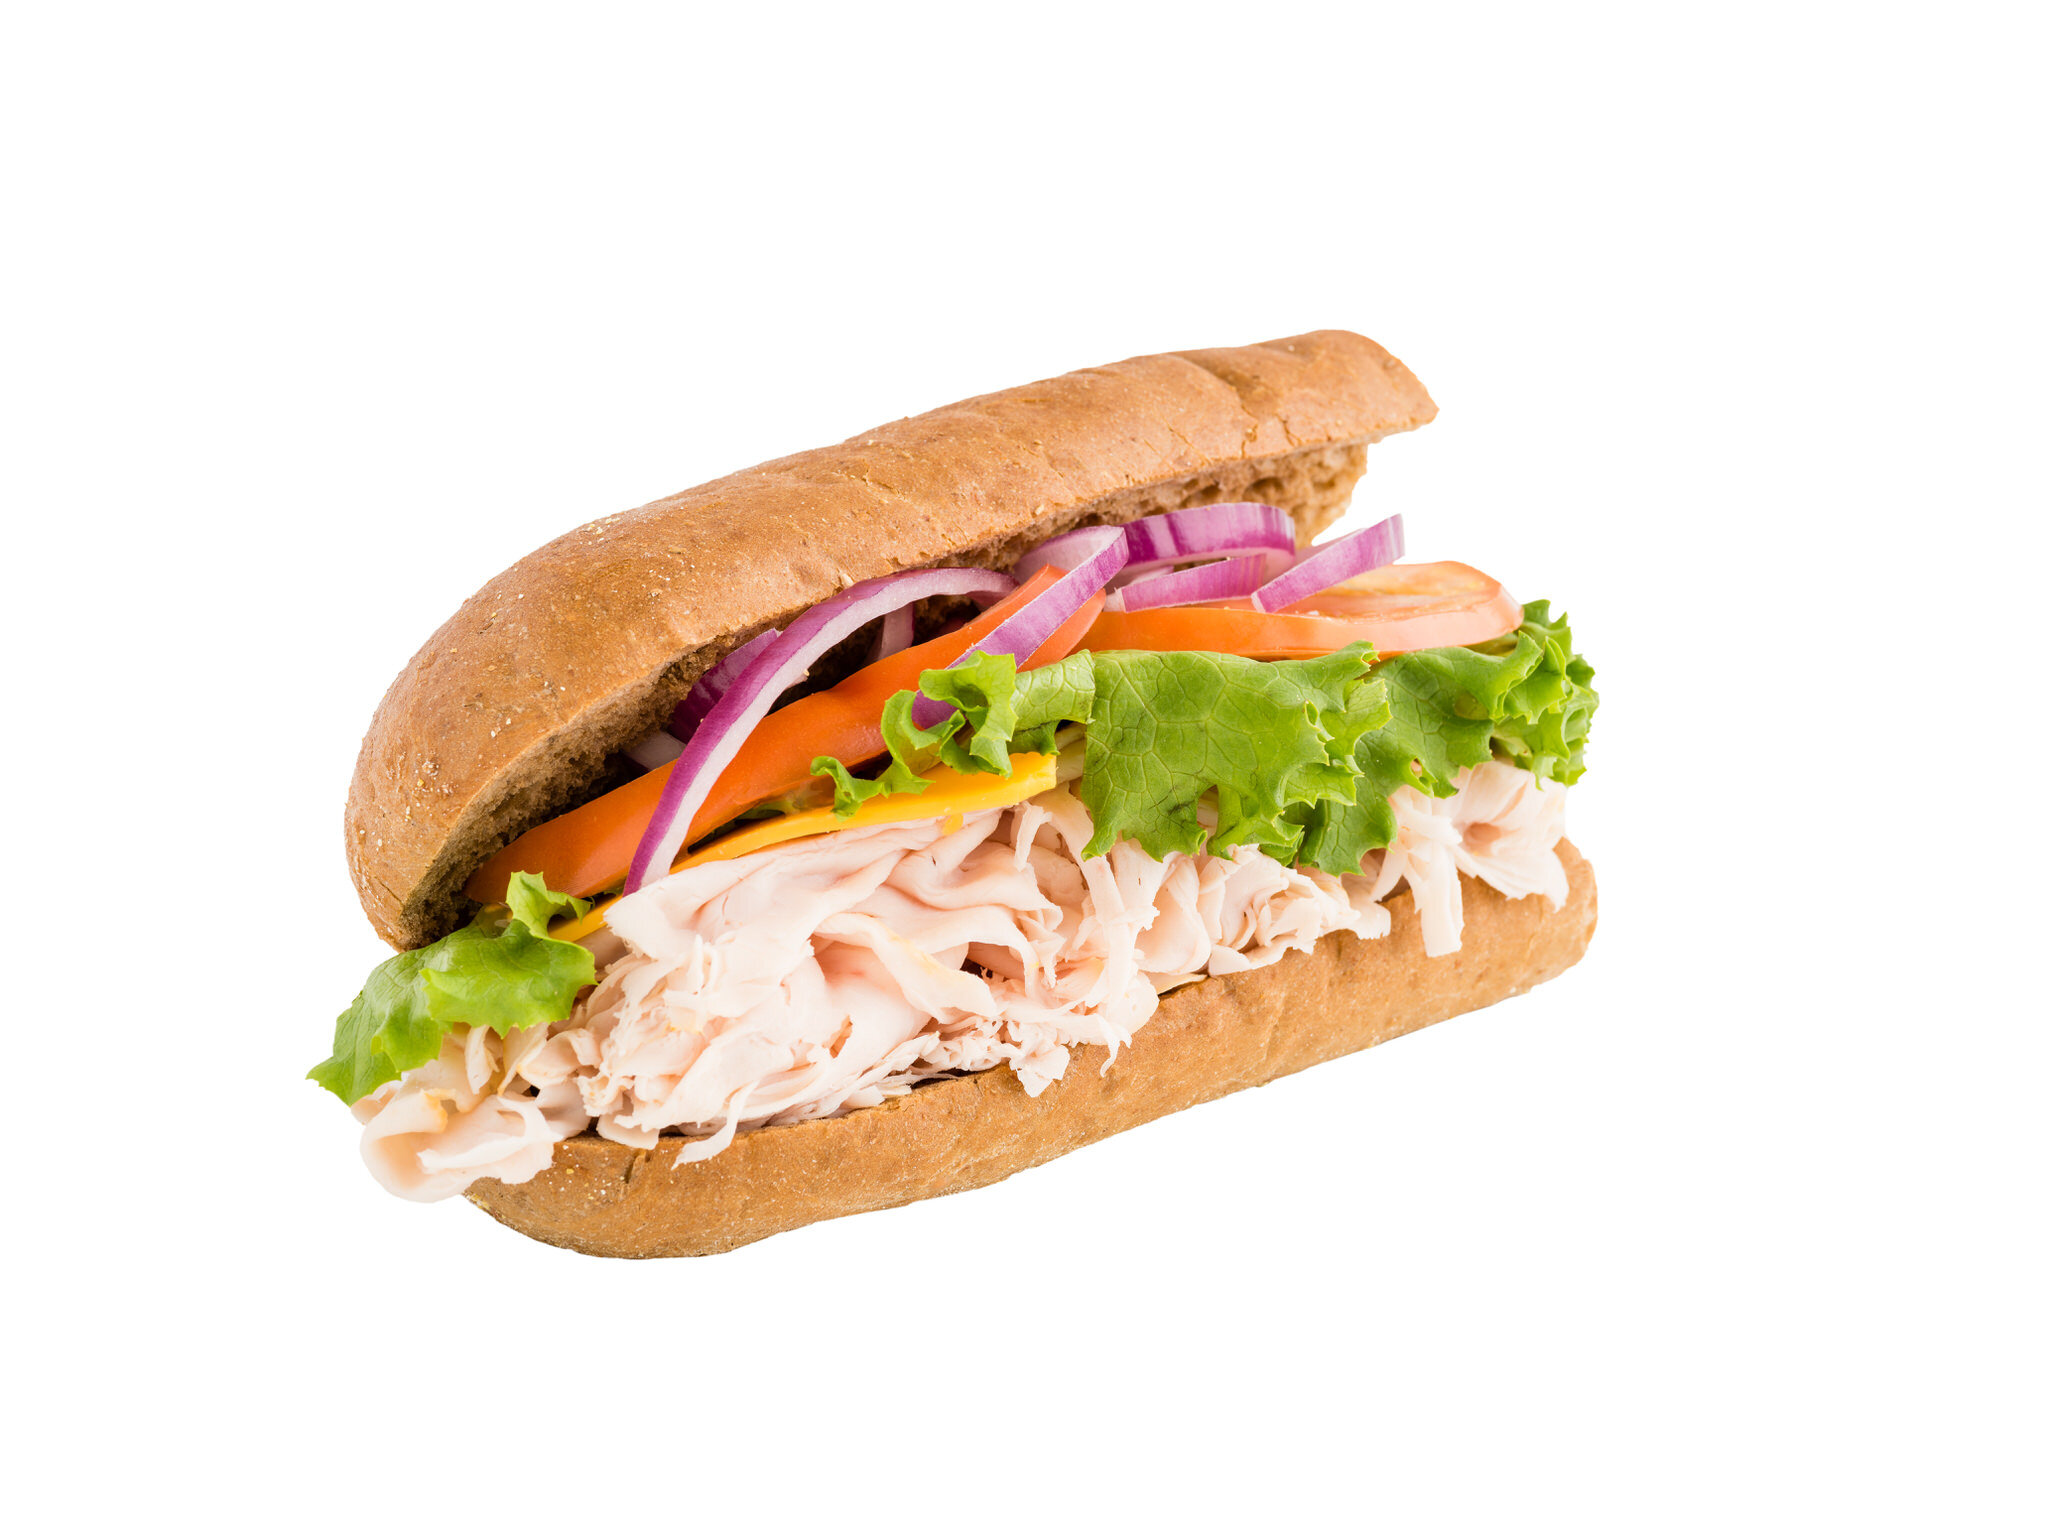 6 Inch Turkey and Cheese on Wheat.jpg